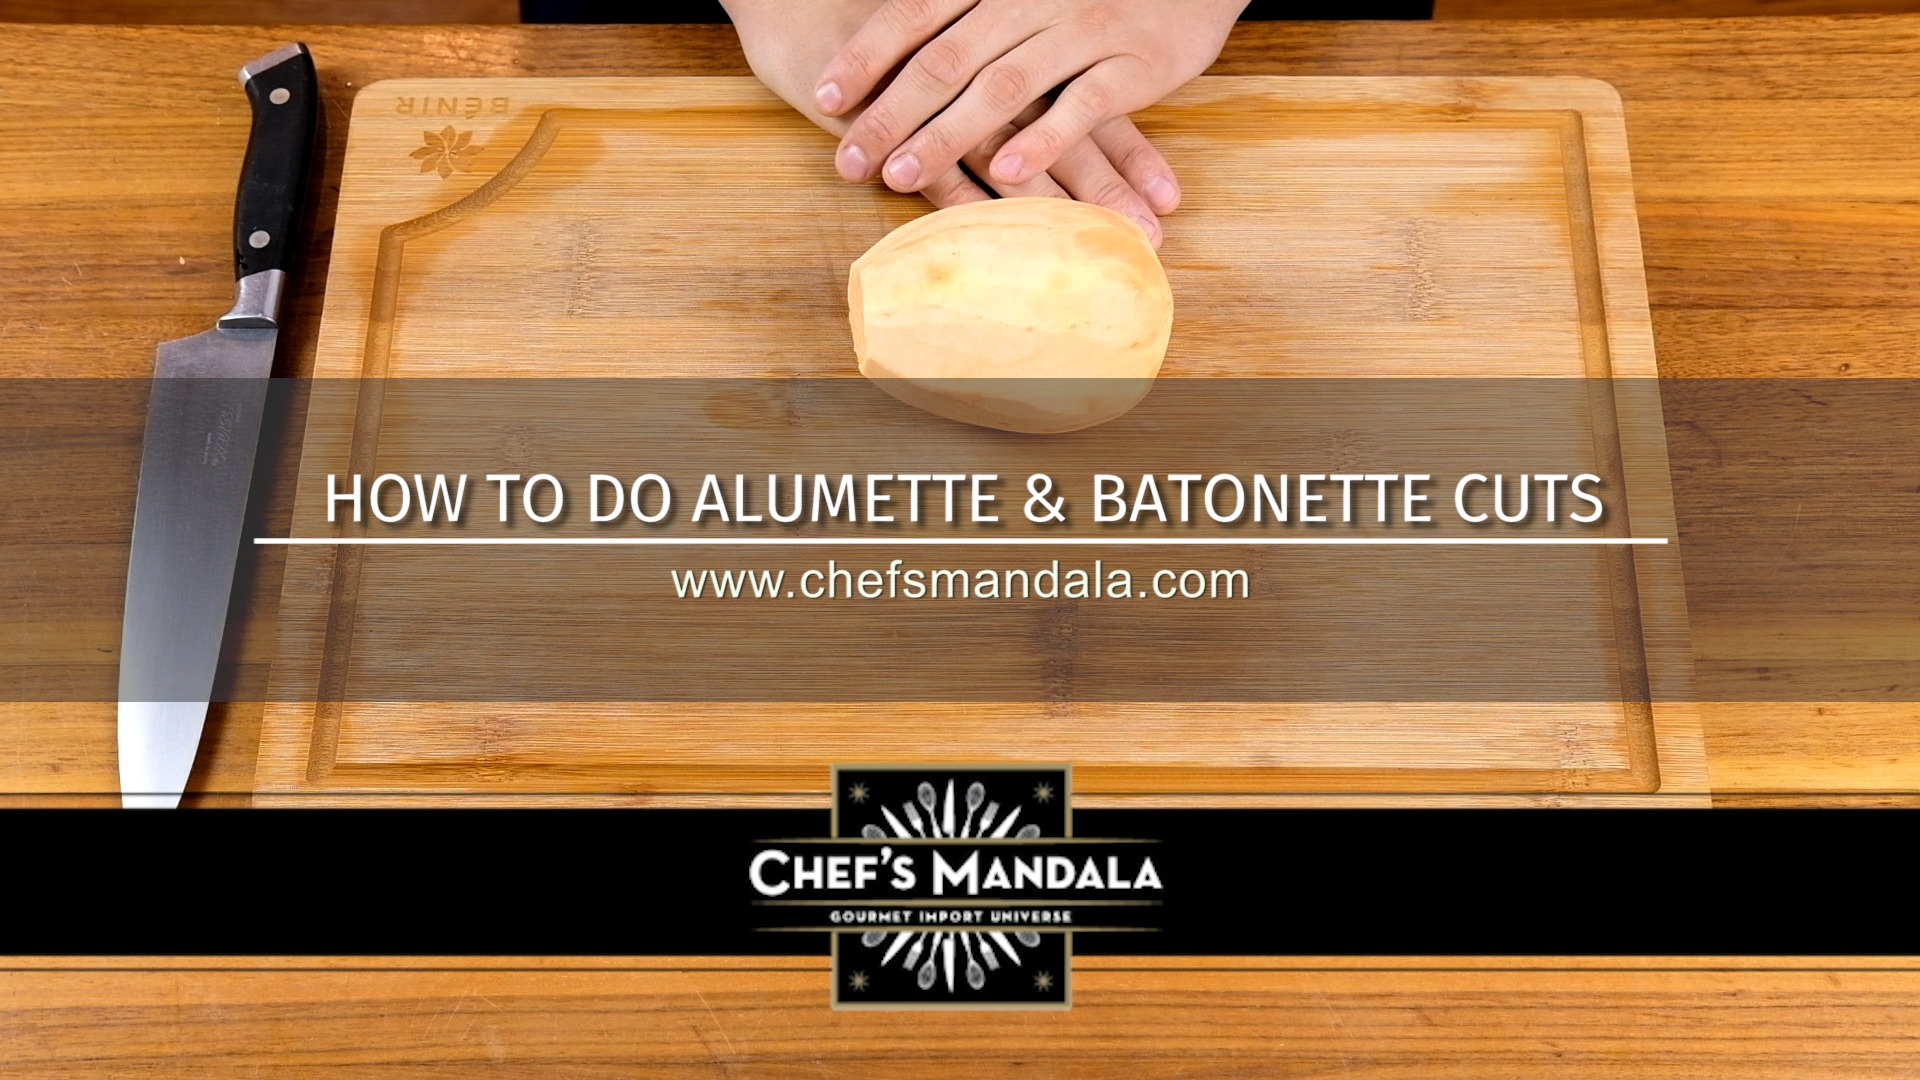 How to do alumette and batonette cuts